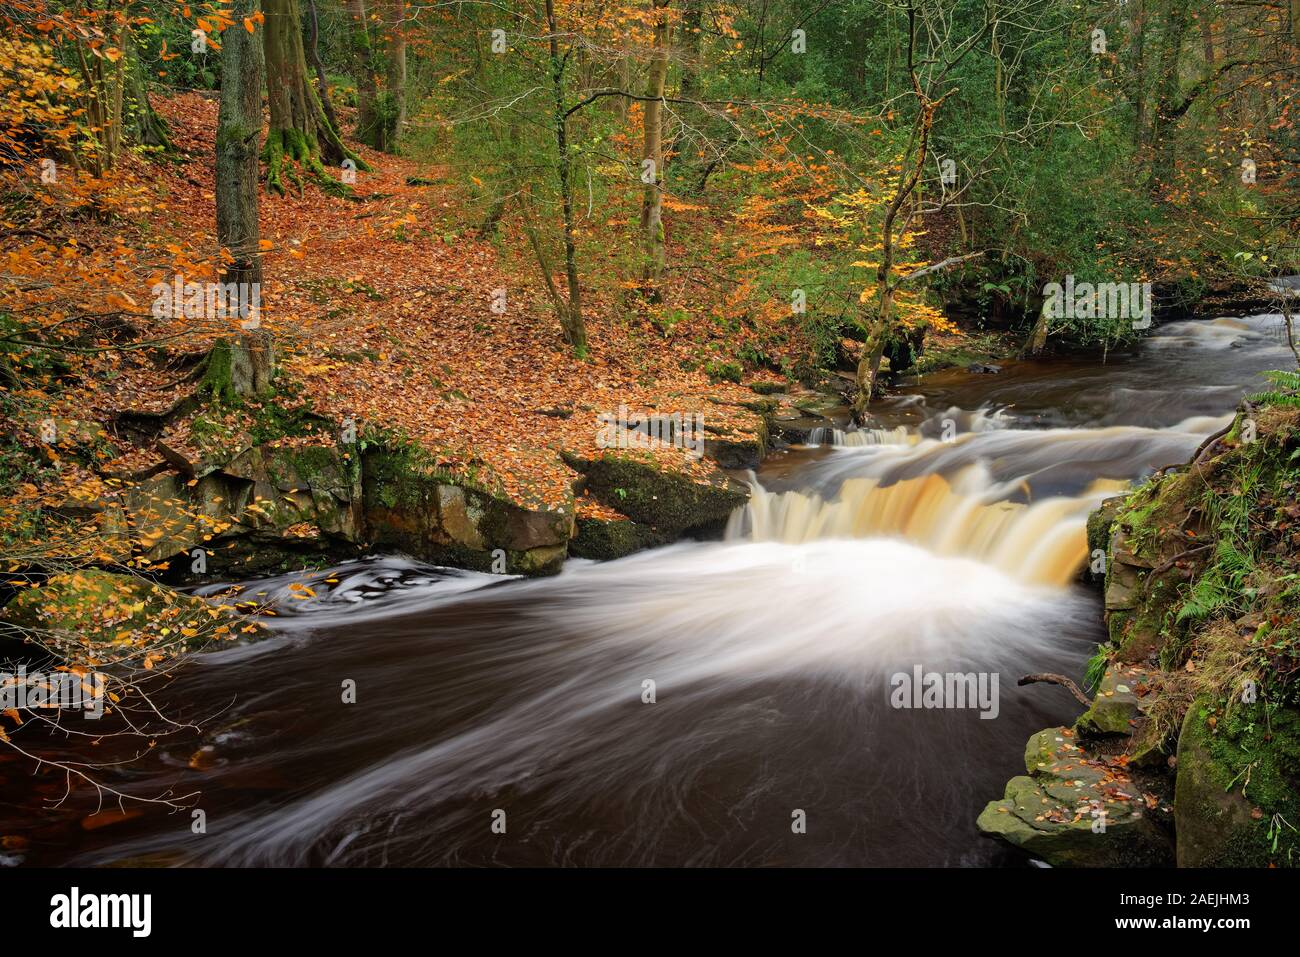 UK,South Yorkshire,Sheffield,River Cascades Rivelin en automne Banque D'Images